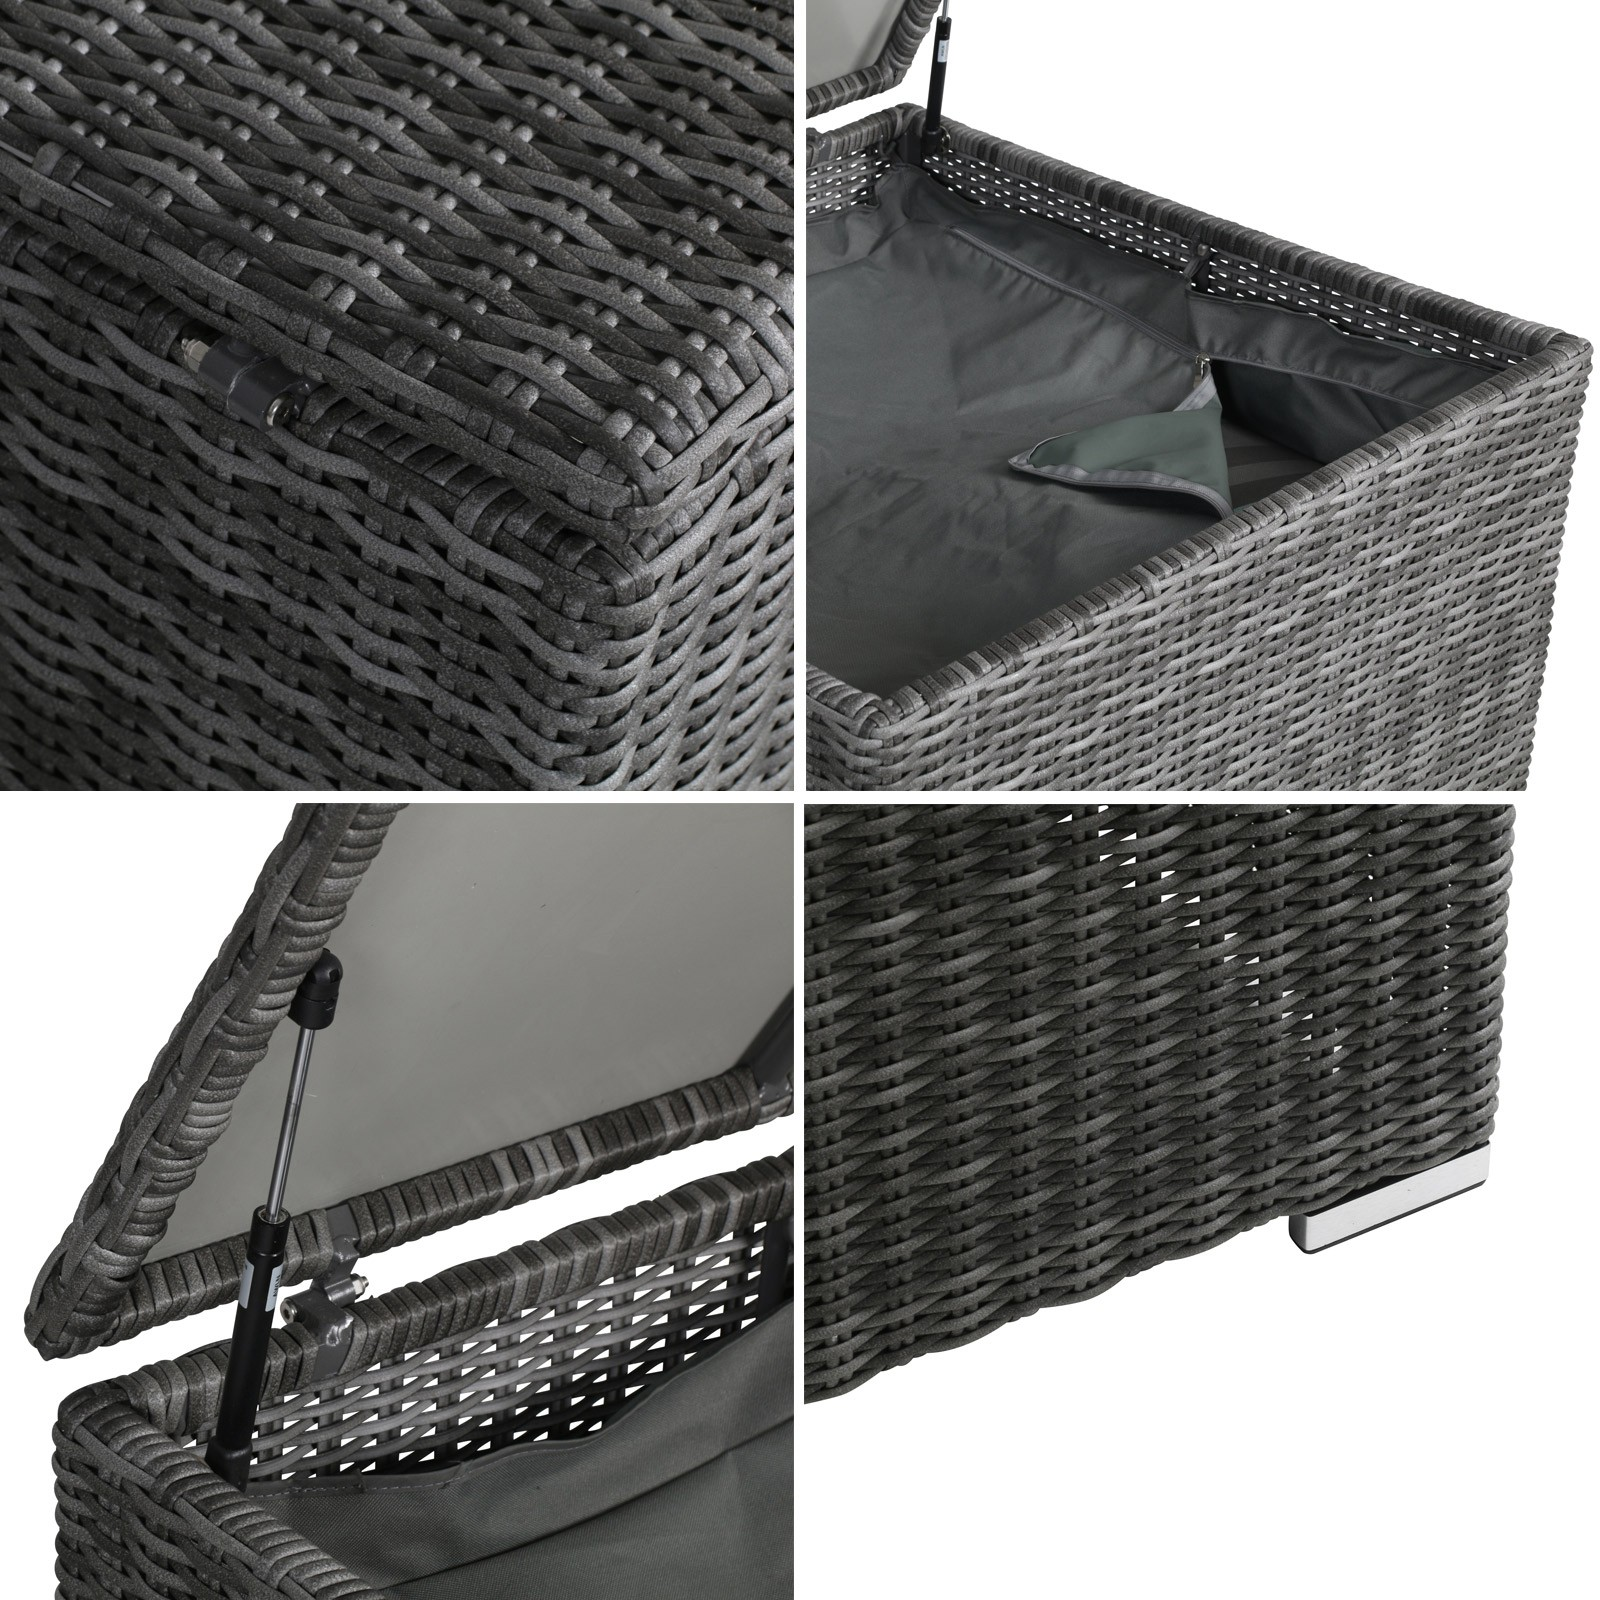 polyrattan auflagenbox affordable von kostenloser versand xxl polyrattan auflagenbox gartenbox. Black Bedroom Furniture Sets. Home Design Ideas